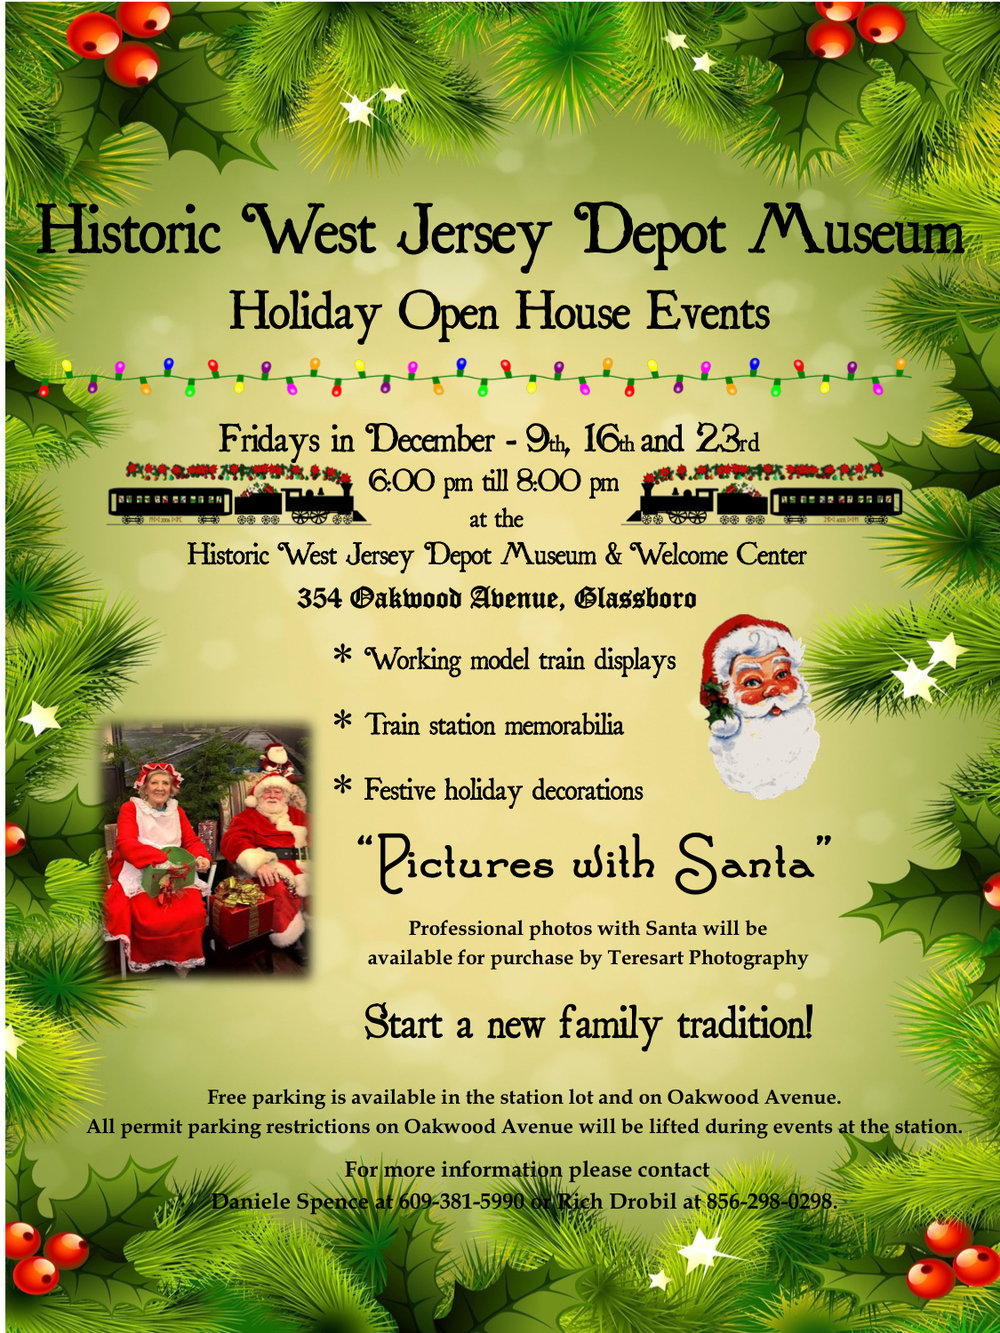 Historic West Jersey Depot Museum Holiday Open House Event